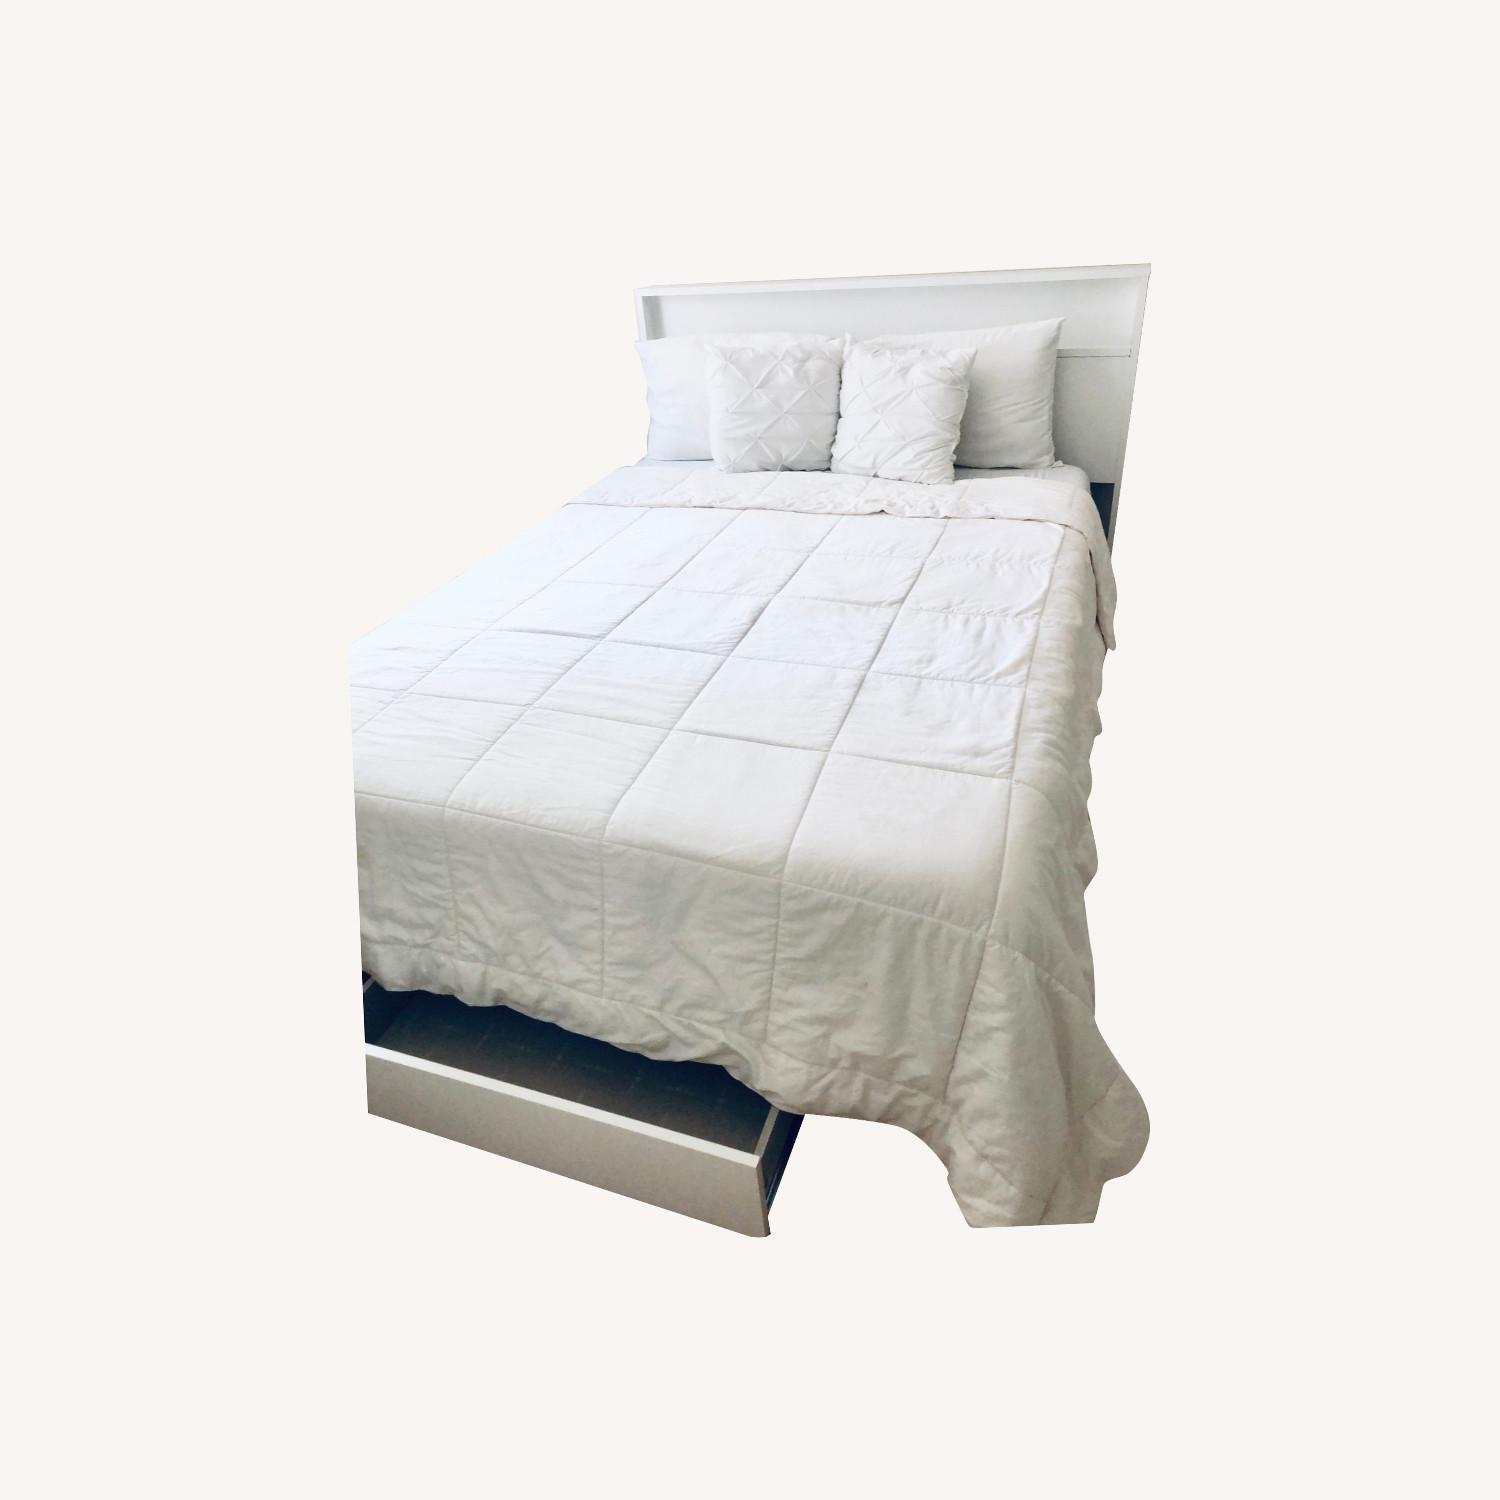 South Shore White Queen Platform Bed Frame - image-0